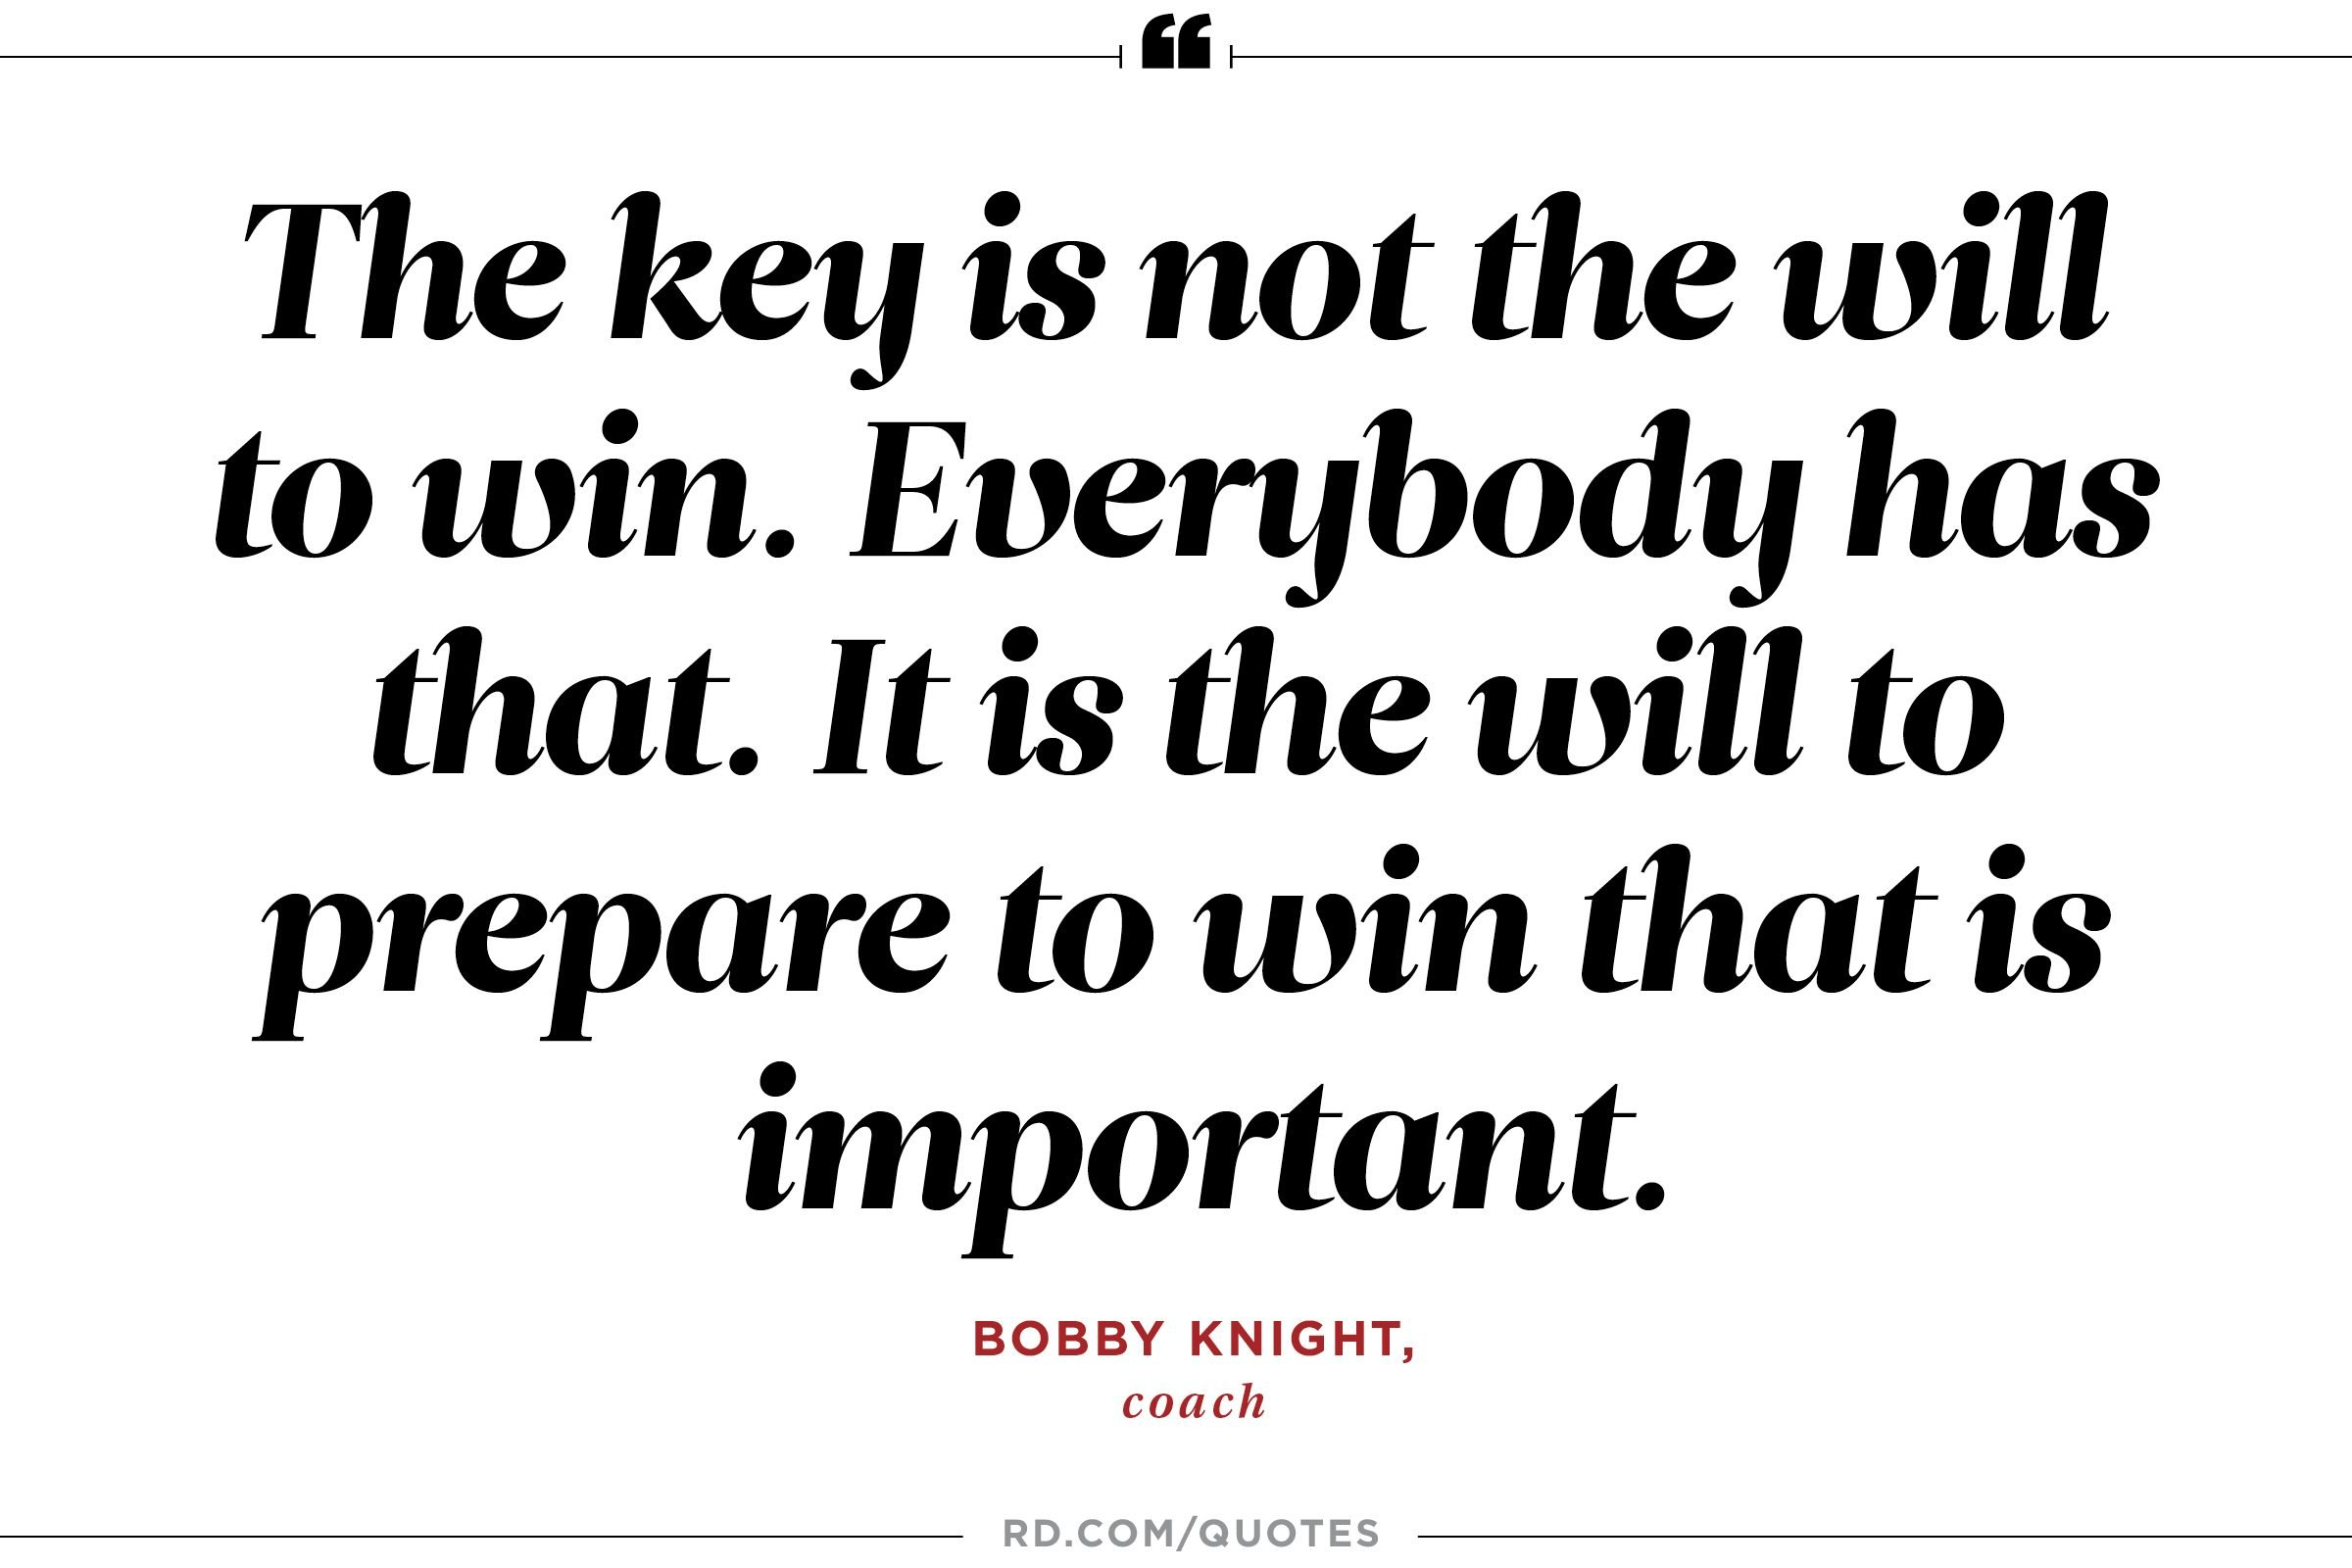 13 Motivational Sports Quotes from Olympic Coaches